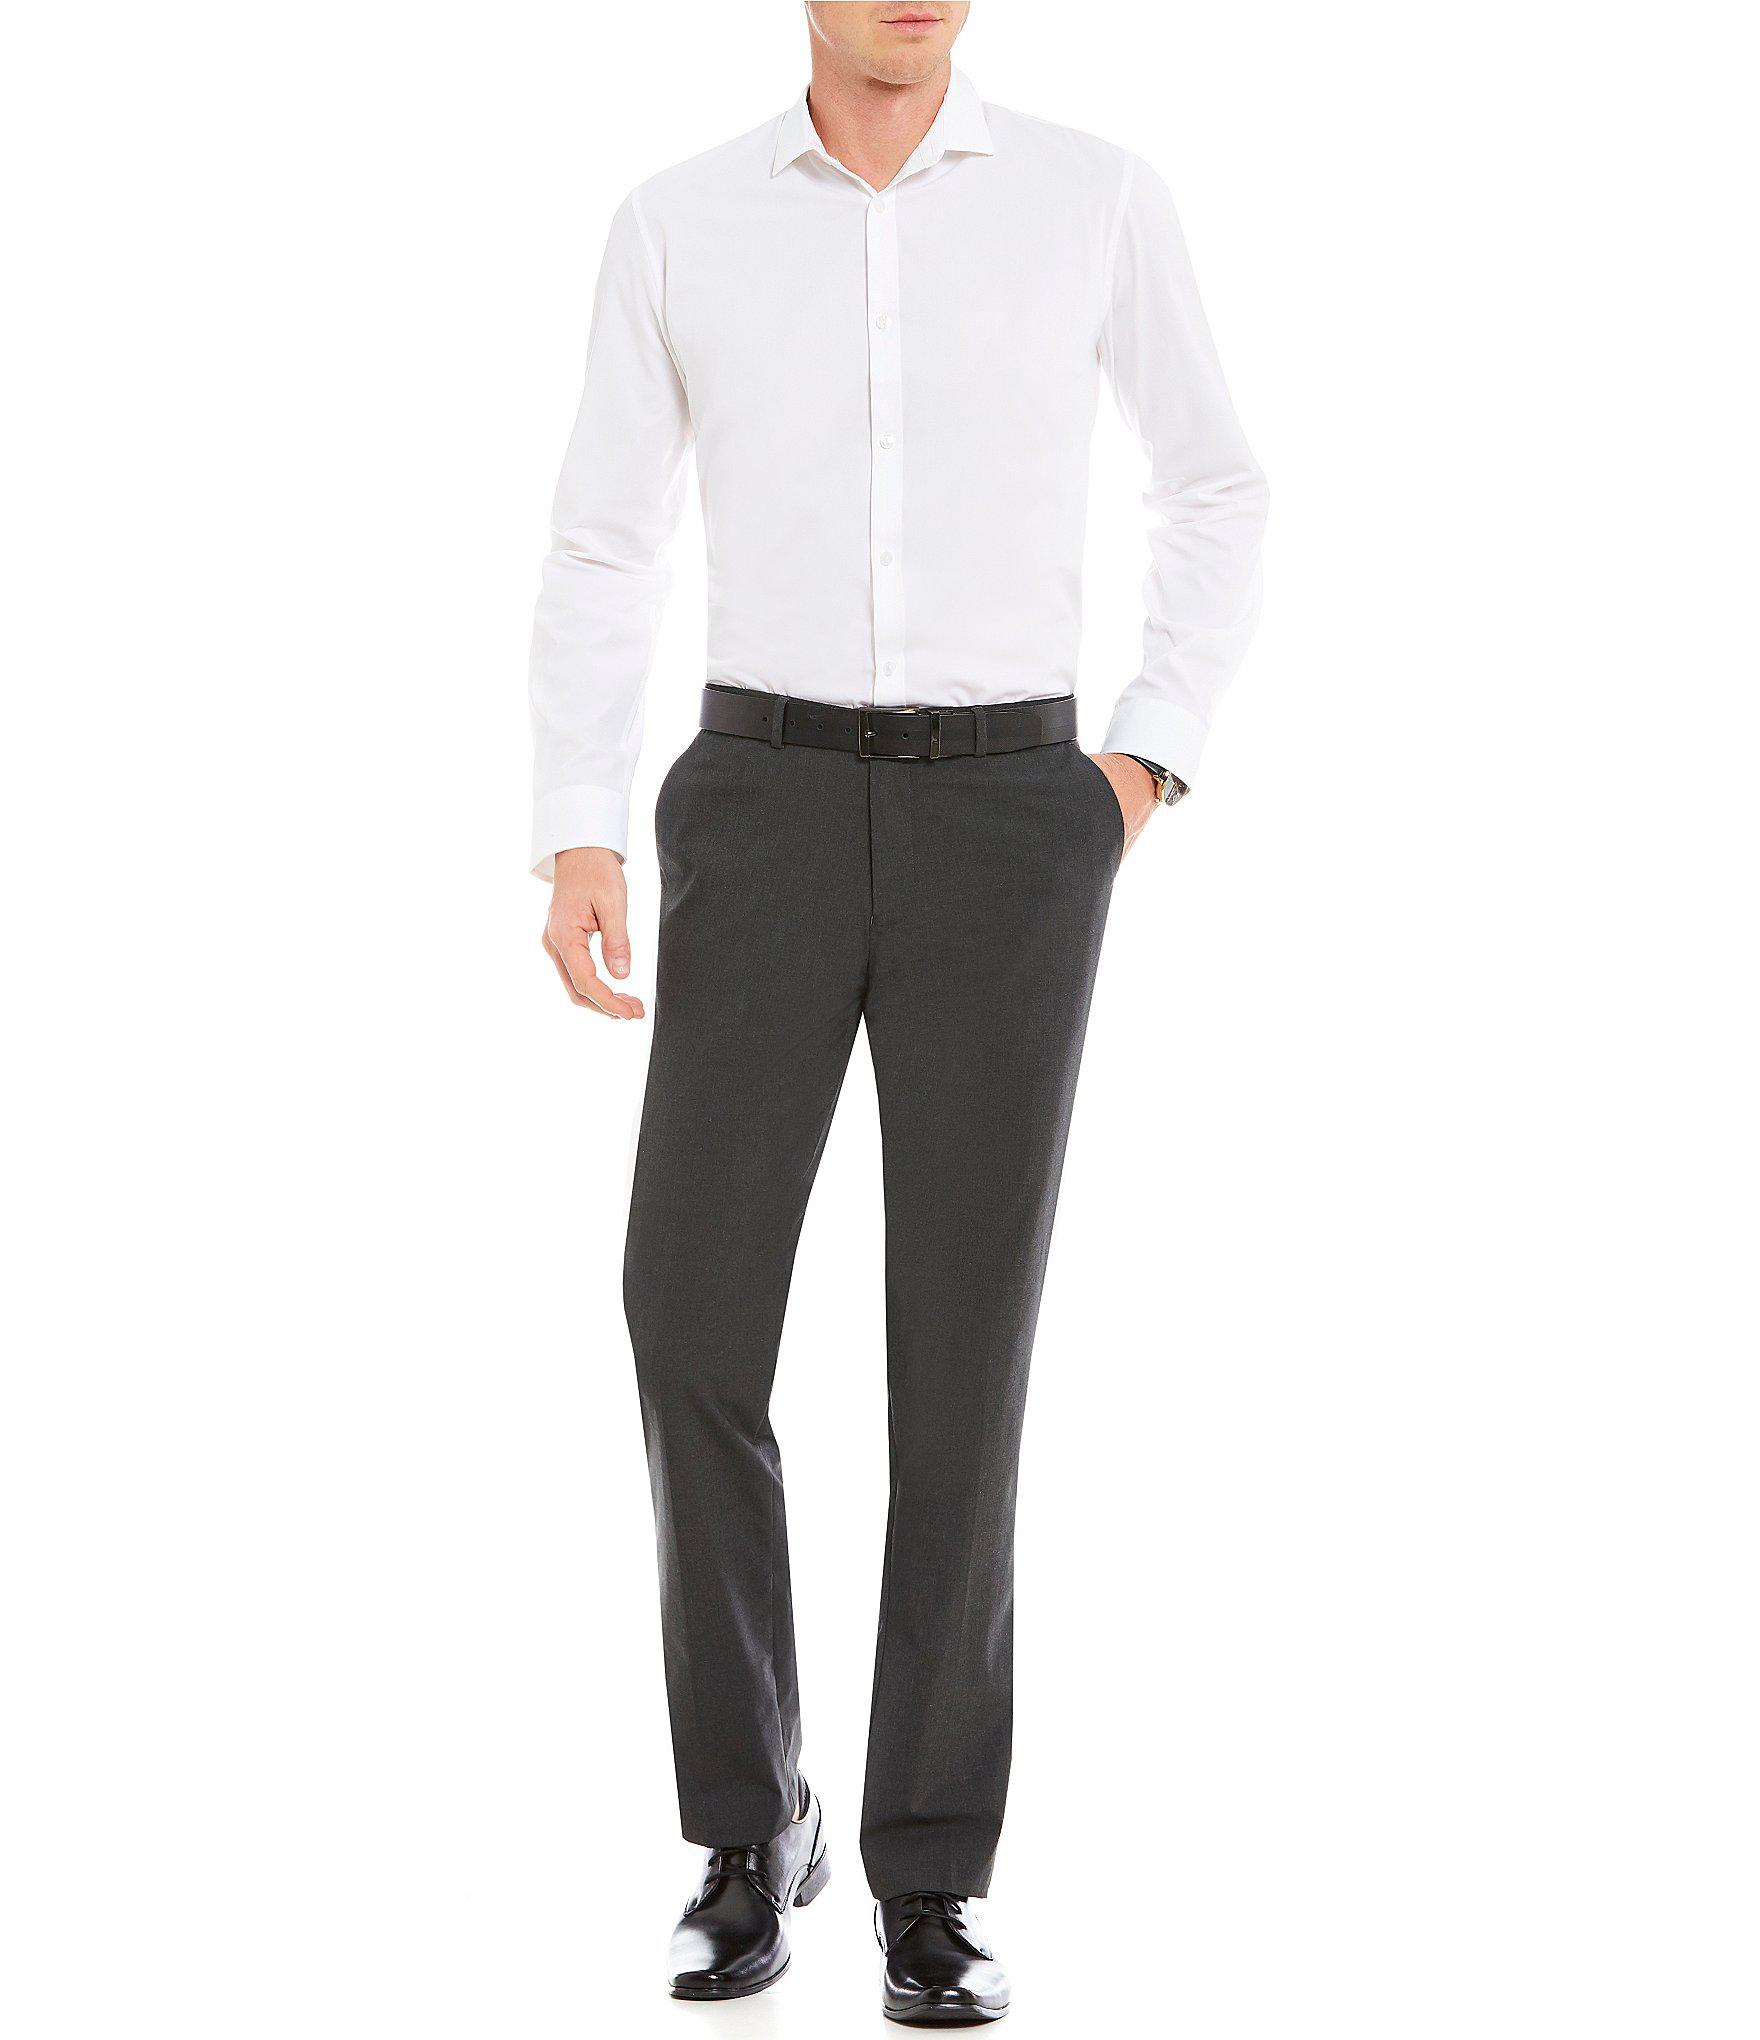 a2f7a42f4e07 Lyst - Calvin Klein Slim-fit End-on-end Bi-stretch Flat Front Suit ...